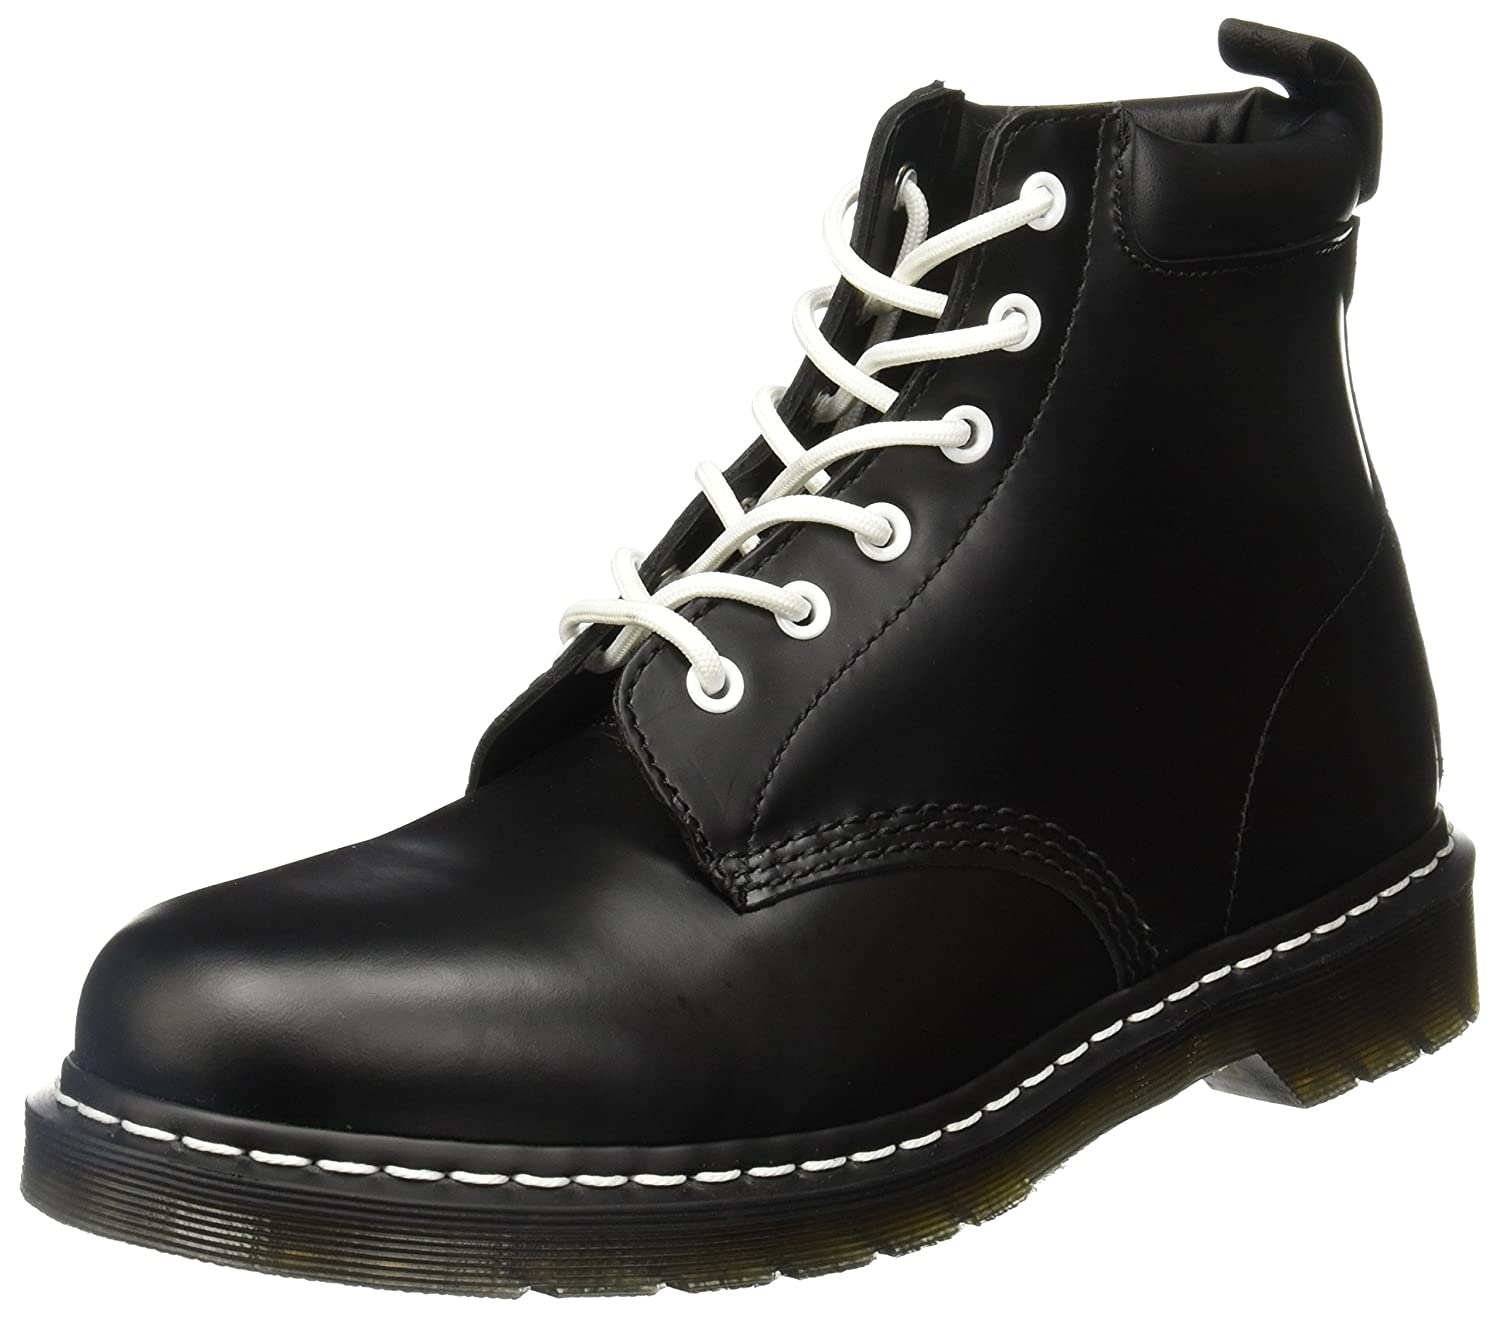 75097d81779 Dr. Martens Men's 939 6-Eye Padded Collar Boot